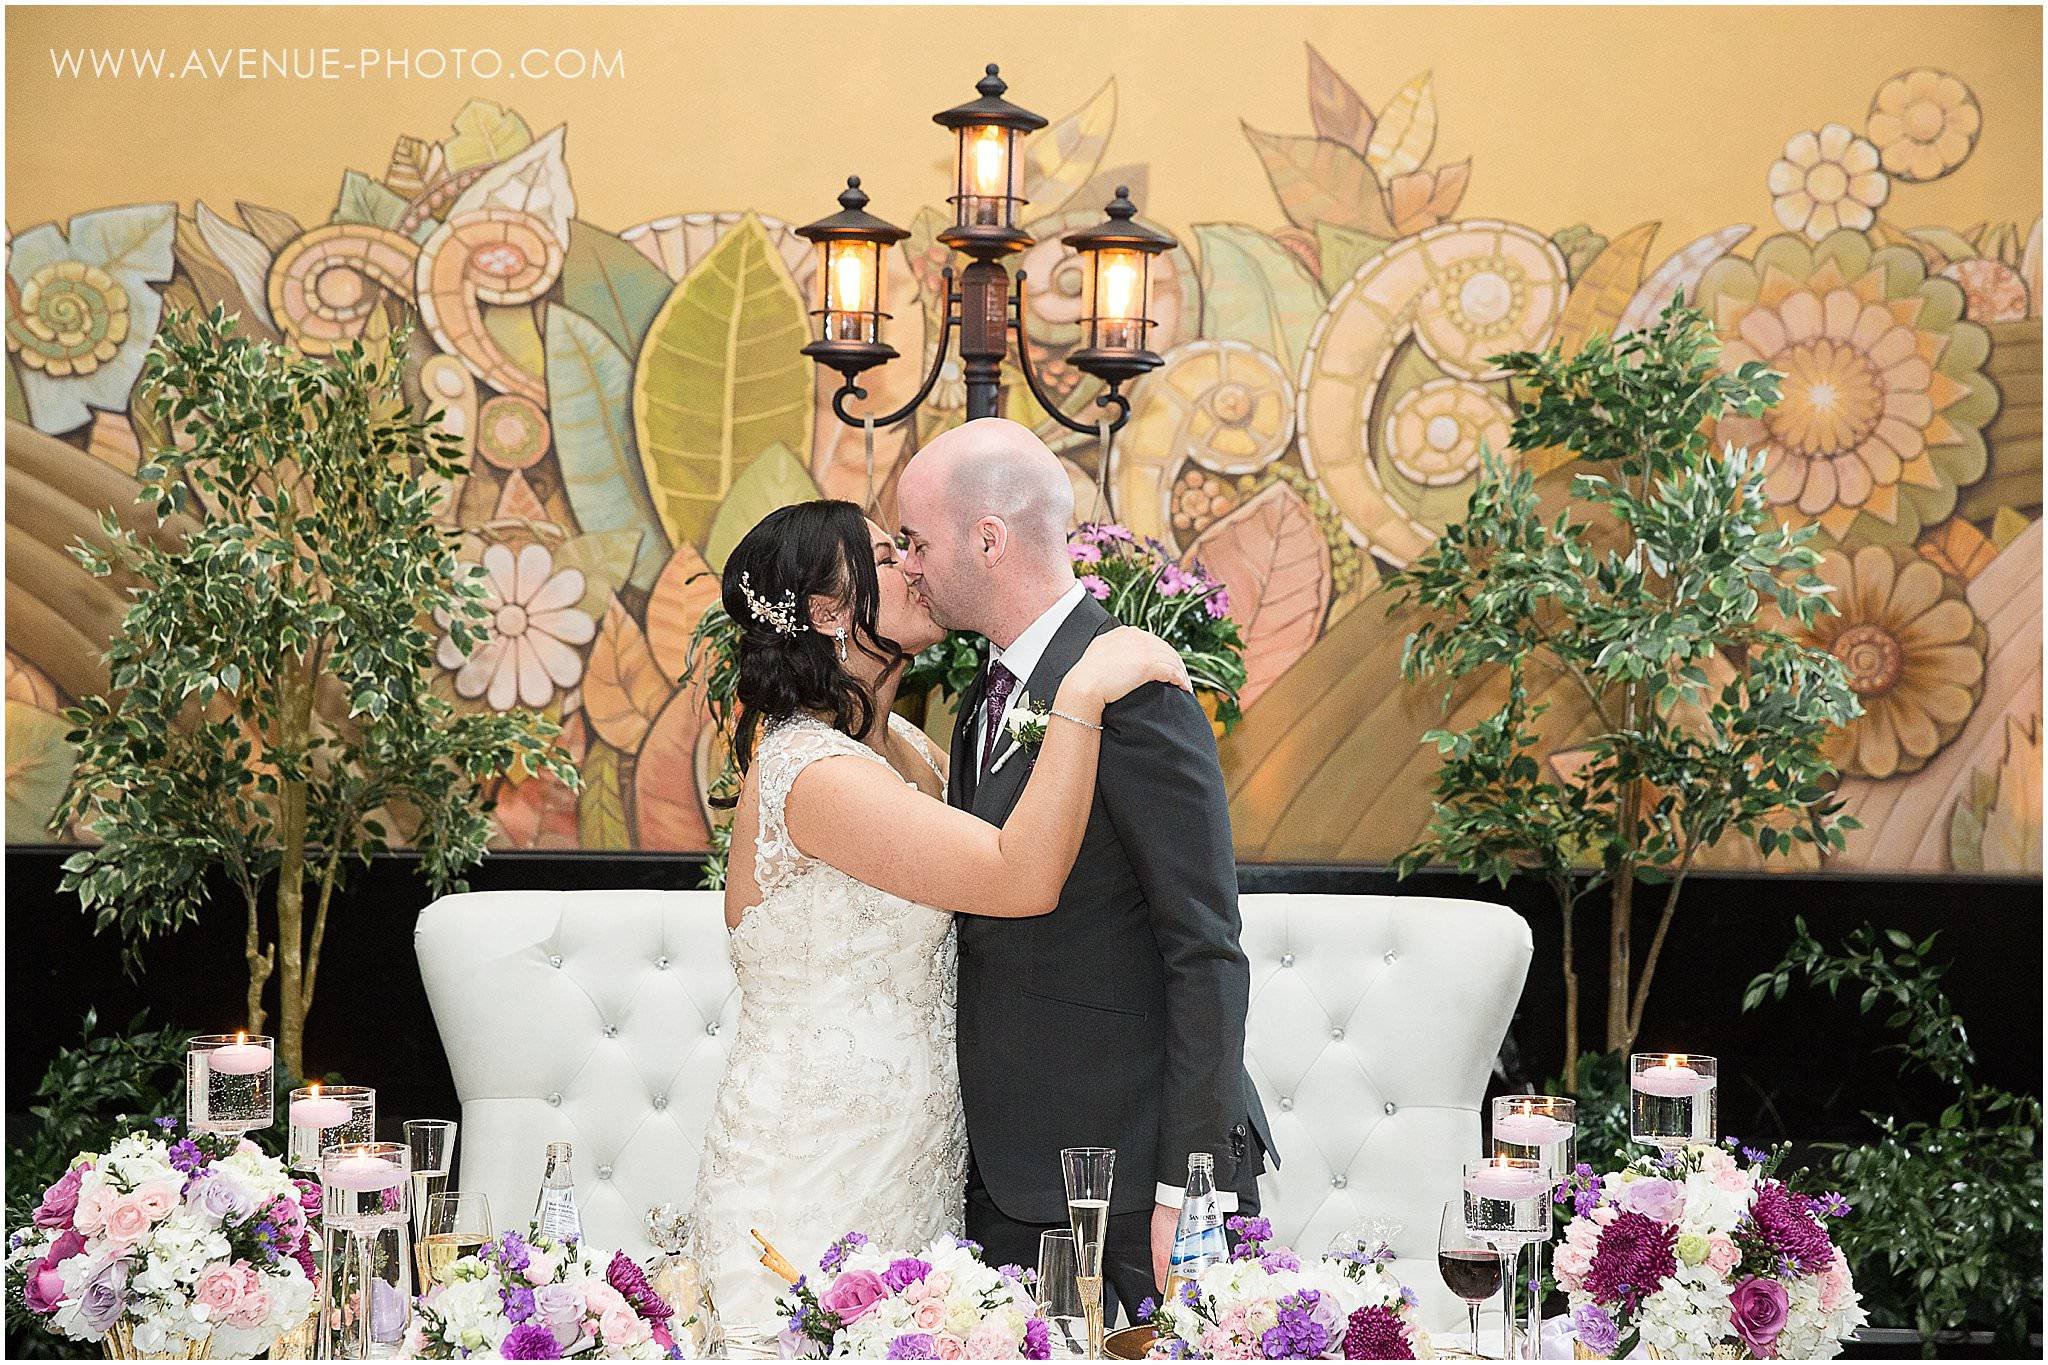 Eglinton Grand Spring Wedding inspired by La La Land and Old Hollywood